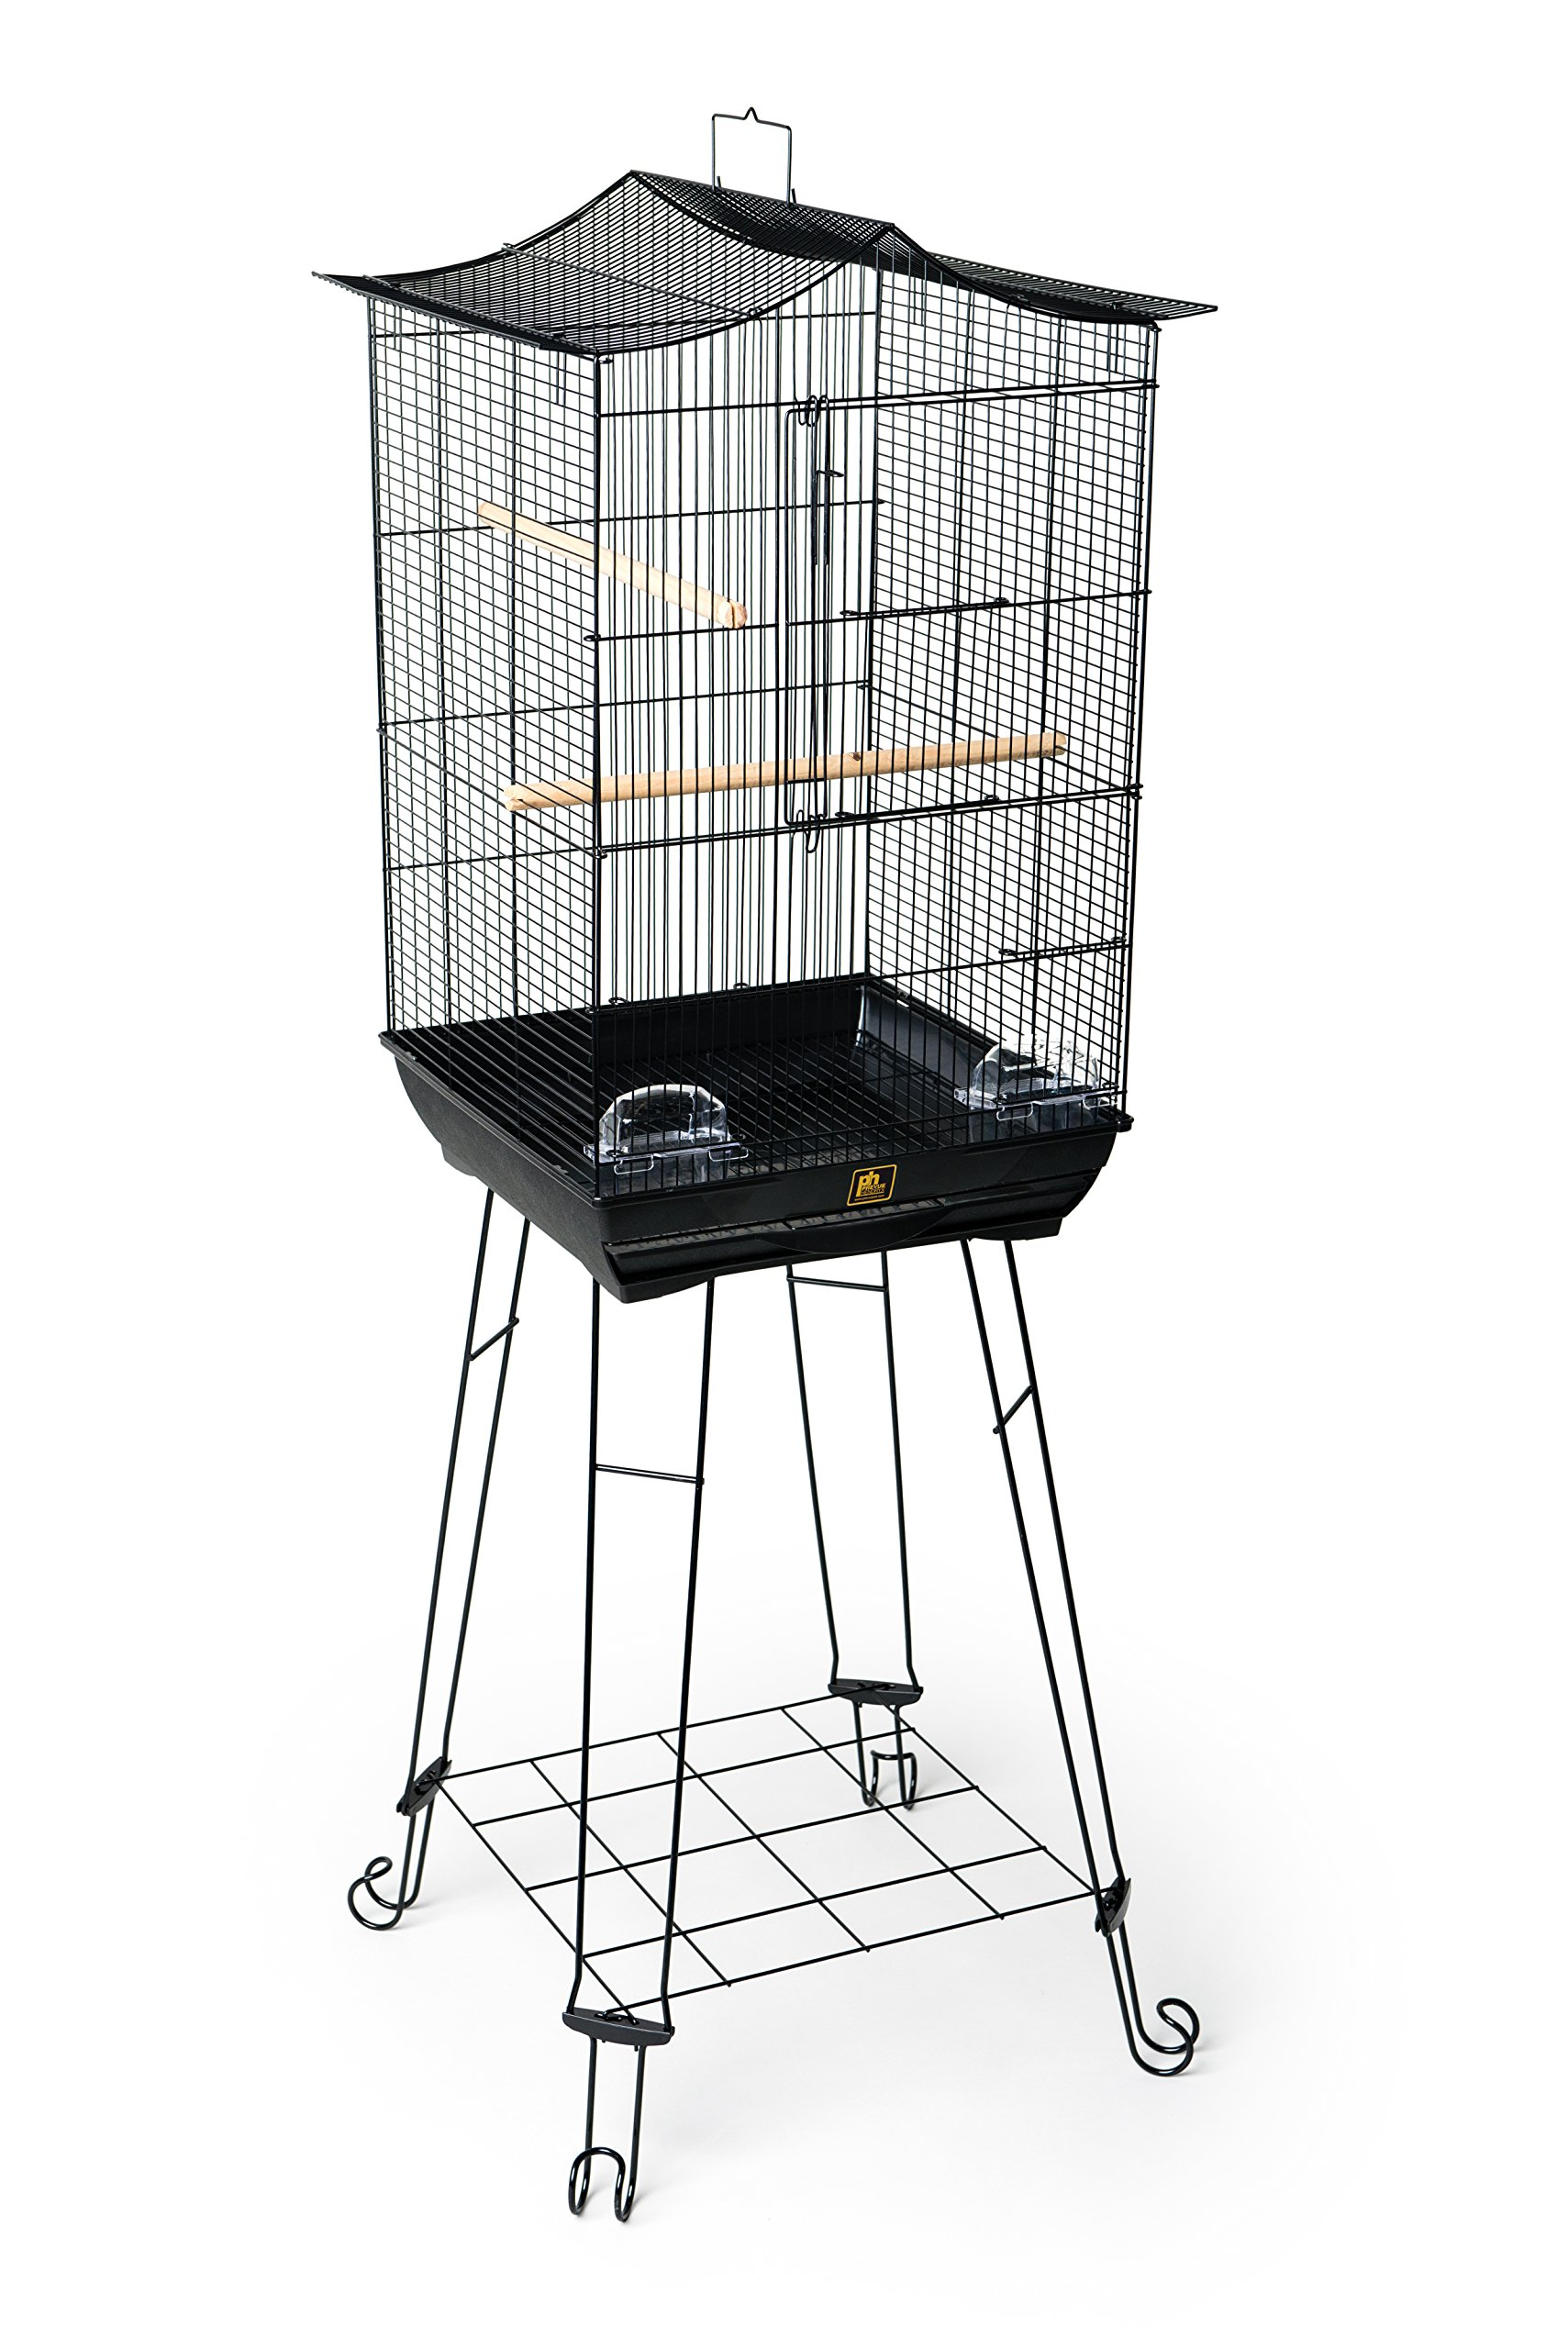 Prevue Pet Products 262 Penthouse Suites Crown Roof Cage with Stand, Black by Prevue Pet Products